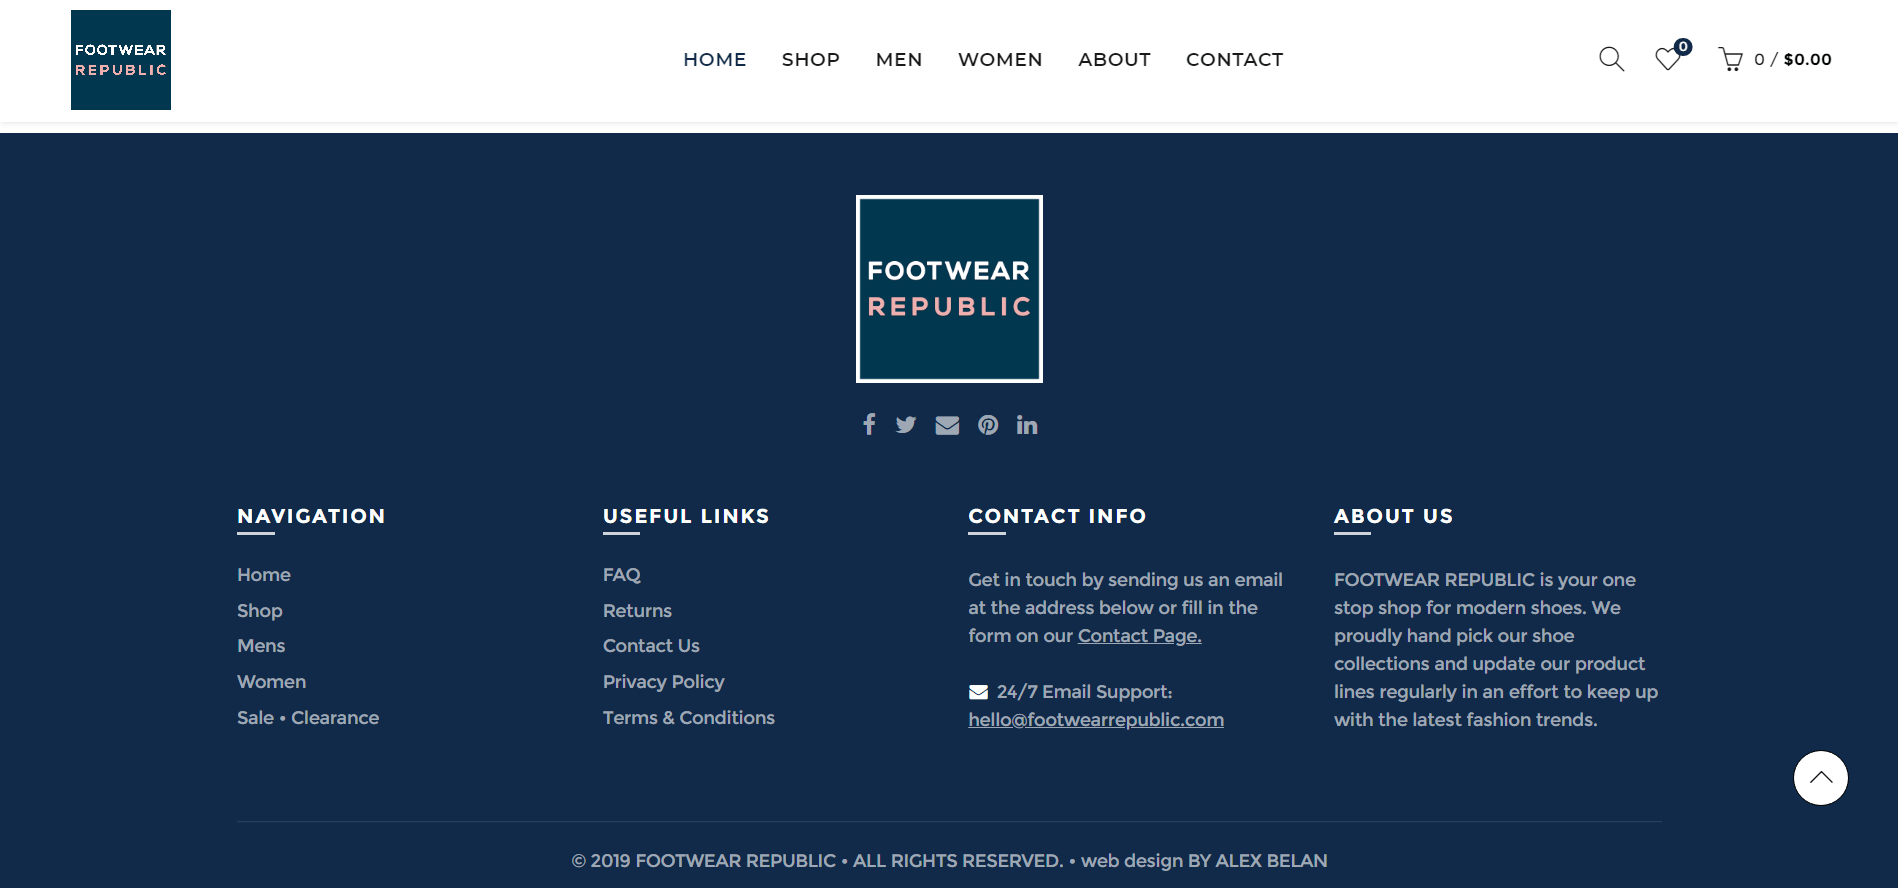 footwear republic footer page